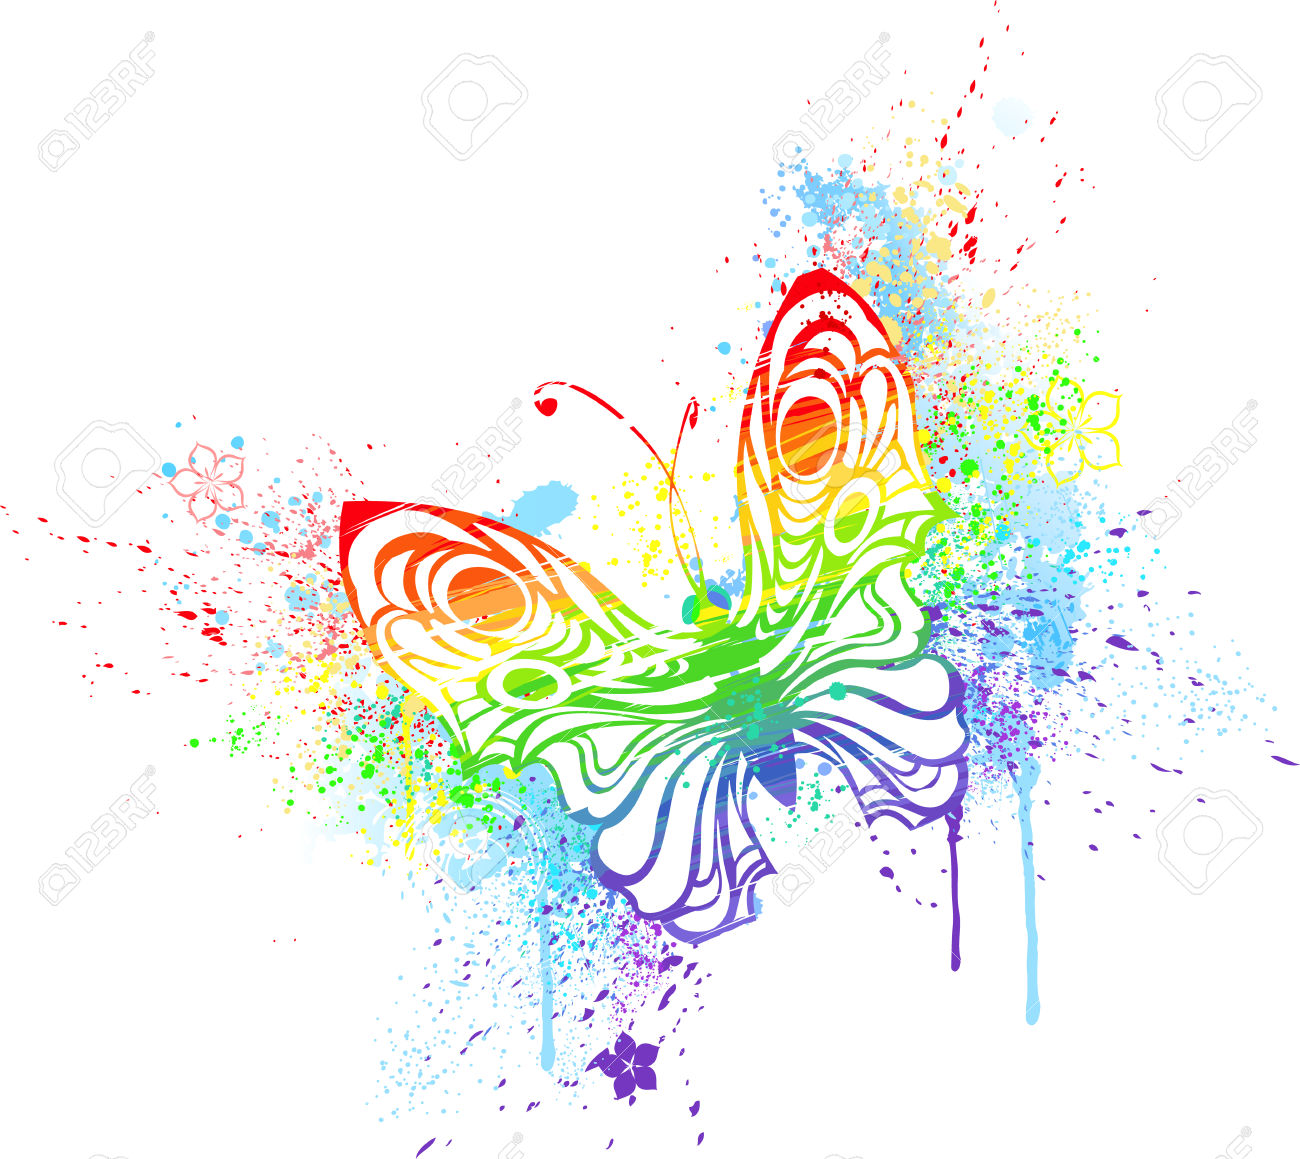 Rainbow Butterfly clipart 4 Butterfly Rainbow Stock Illustrations